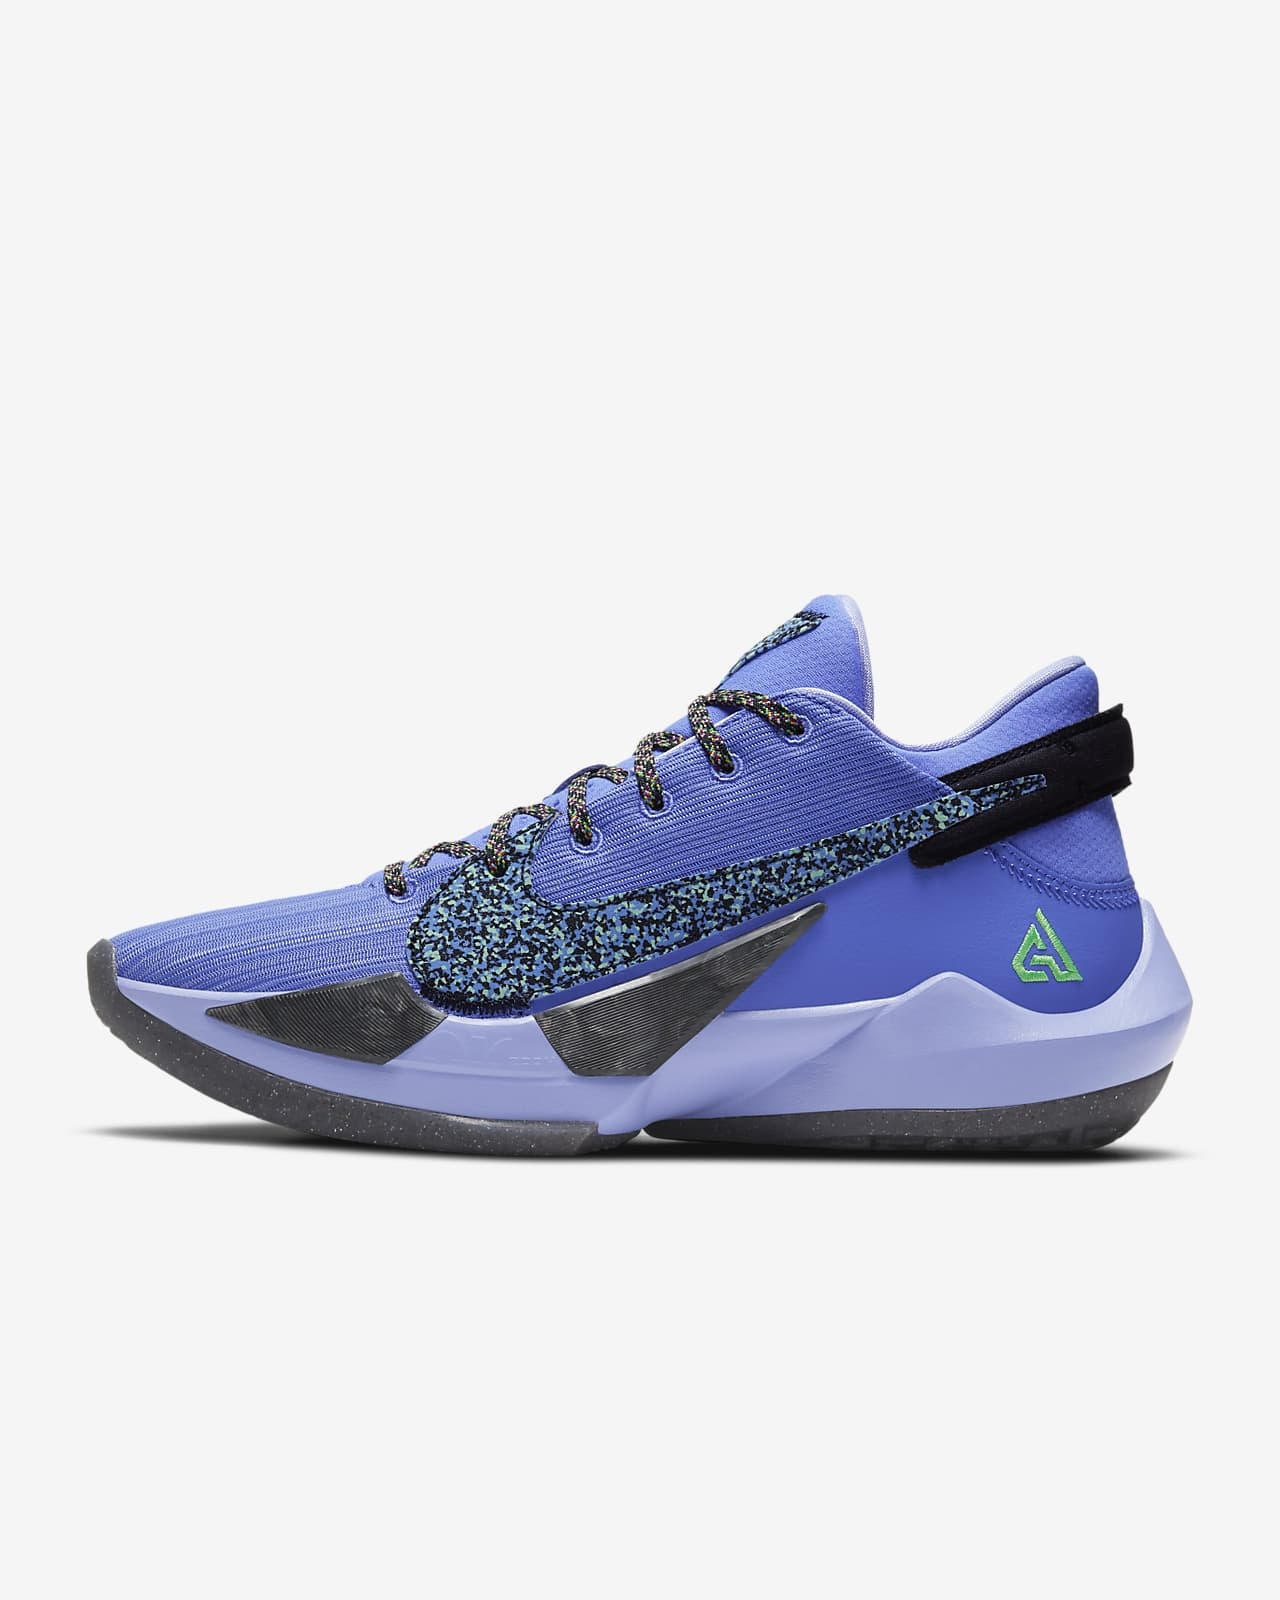 Chaussure de basketball Zoom Freak 2 « Play for the Future »